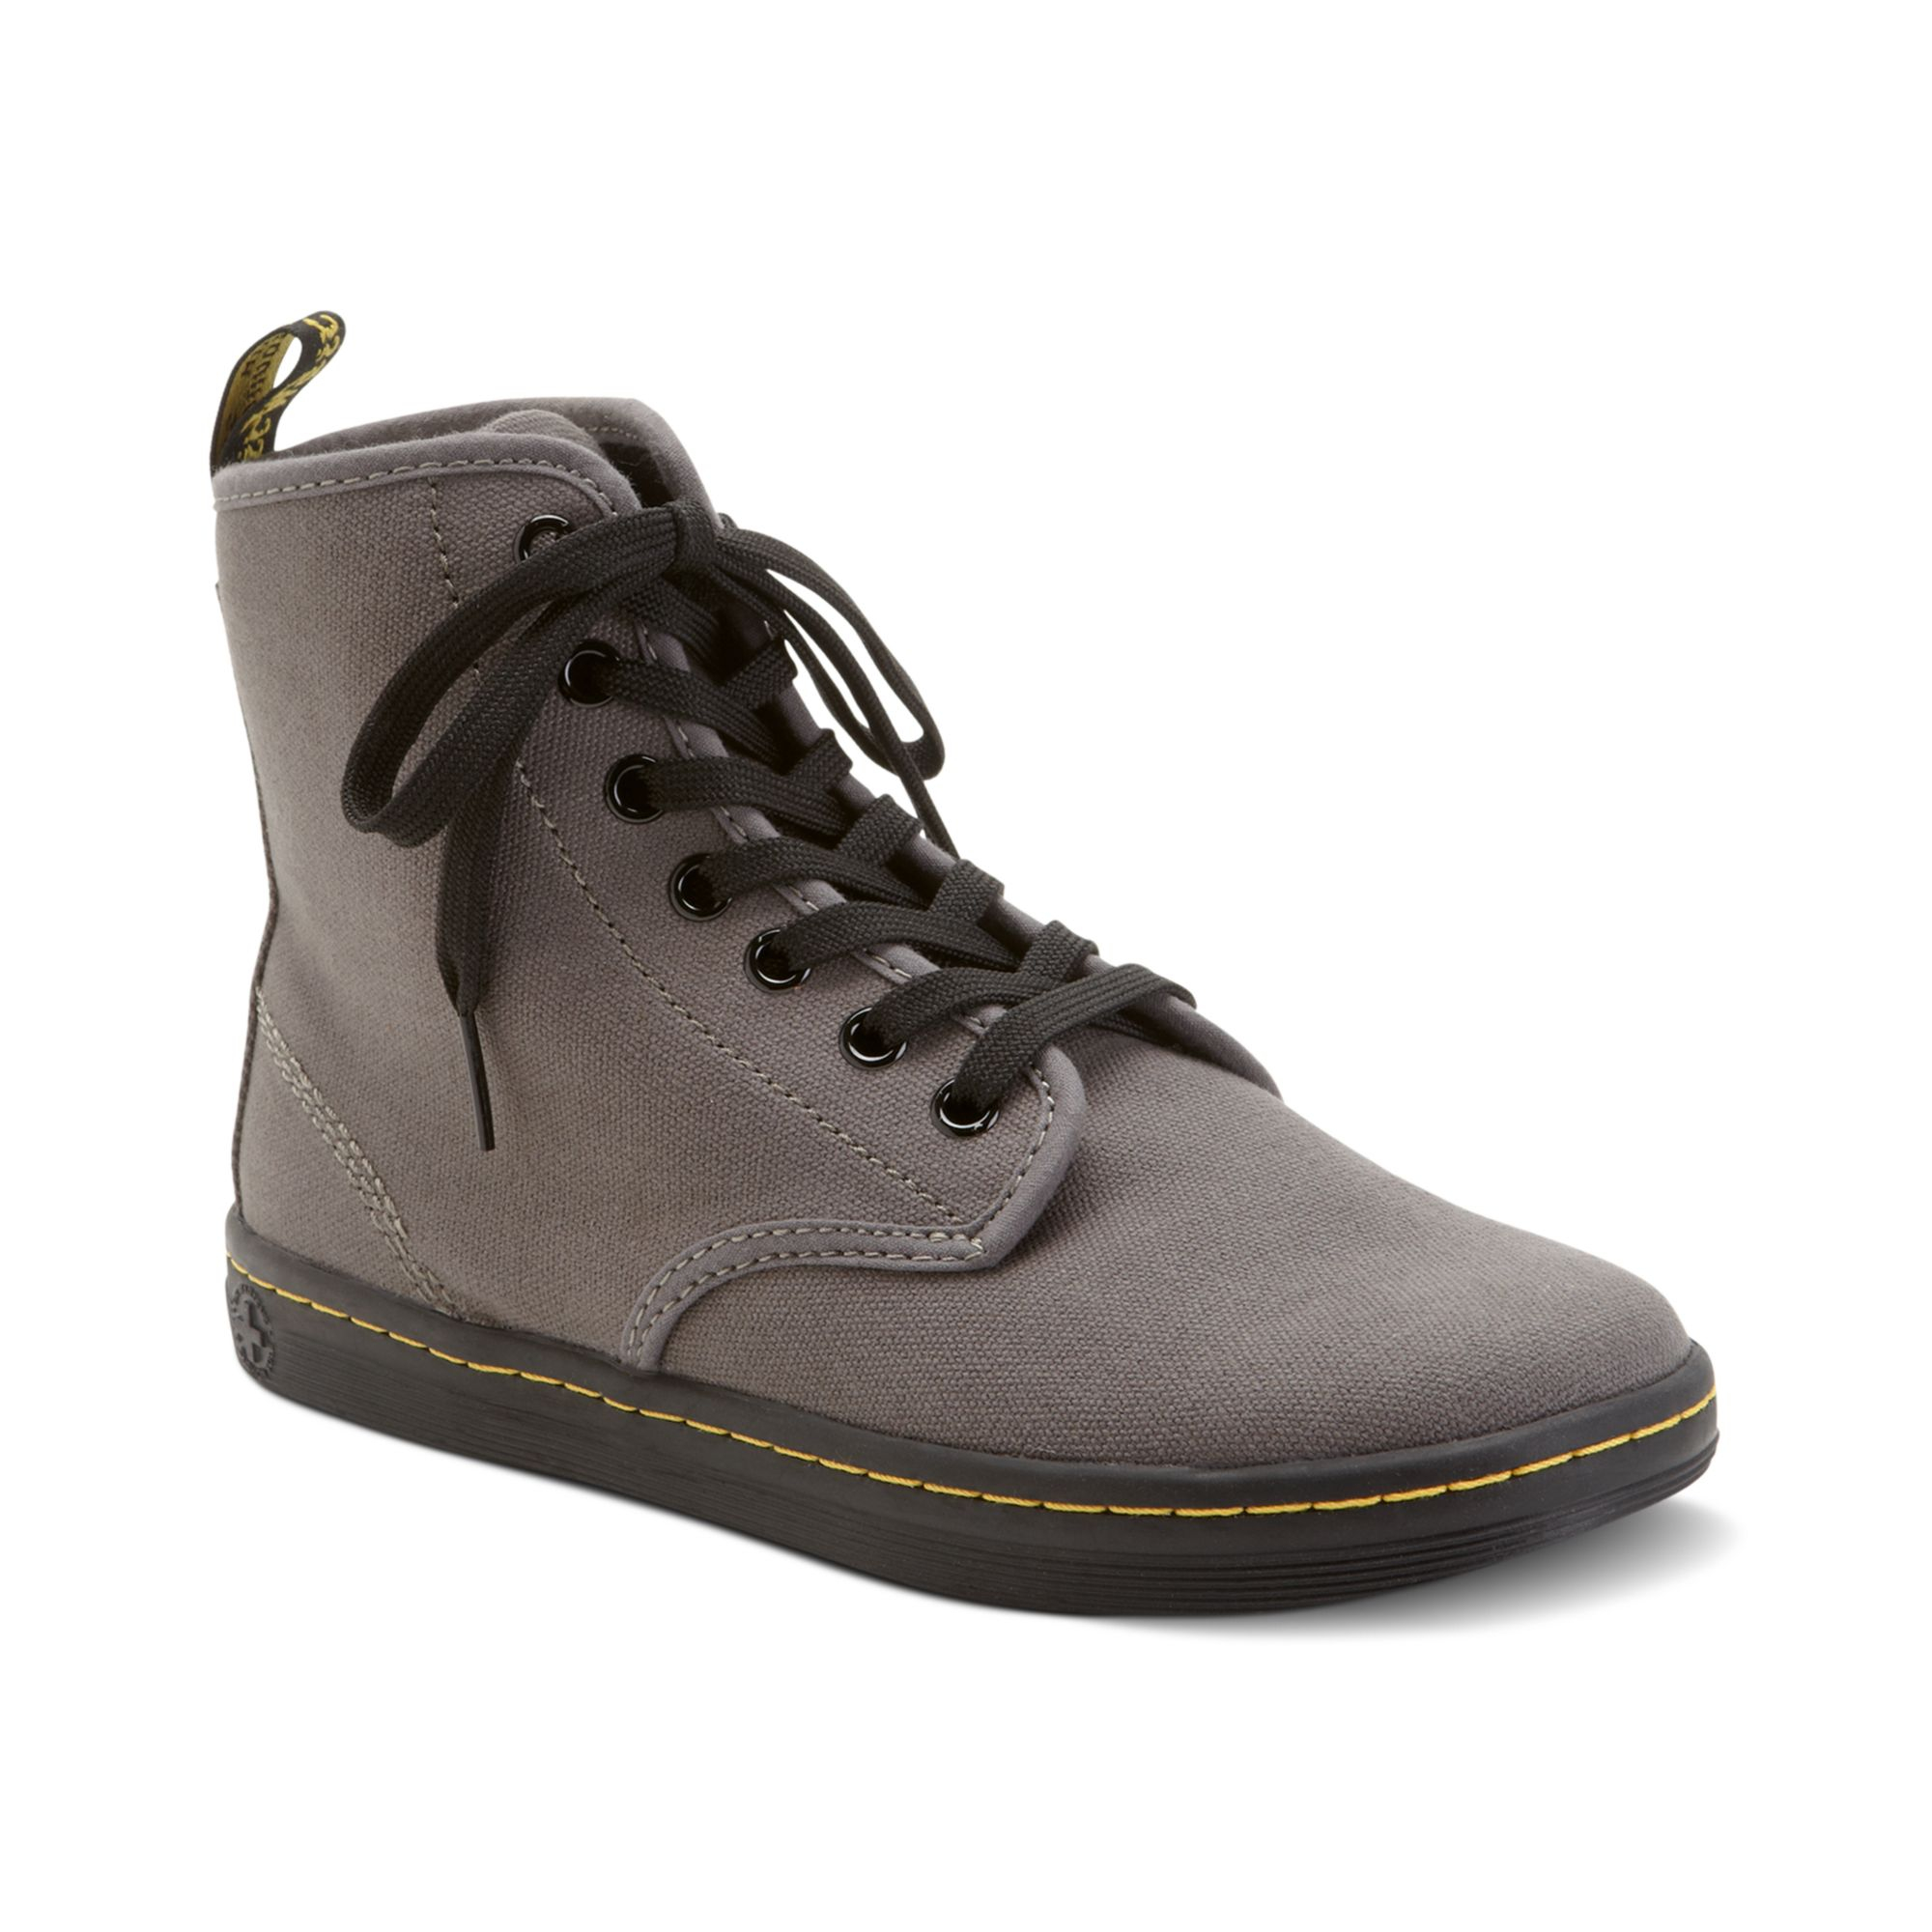 f793eb01ee8eb Lyst - Dr. Martens Shoreditch High Top Sneakers in Brown